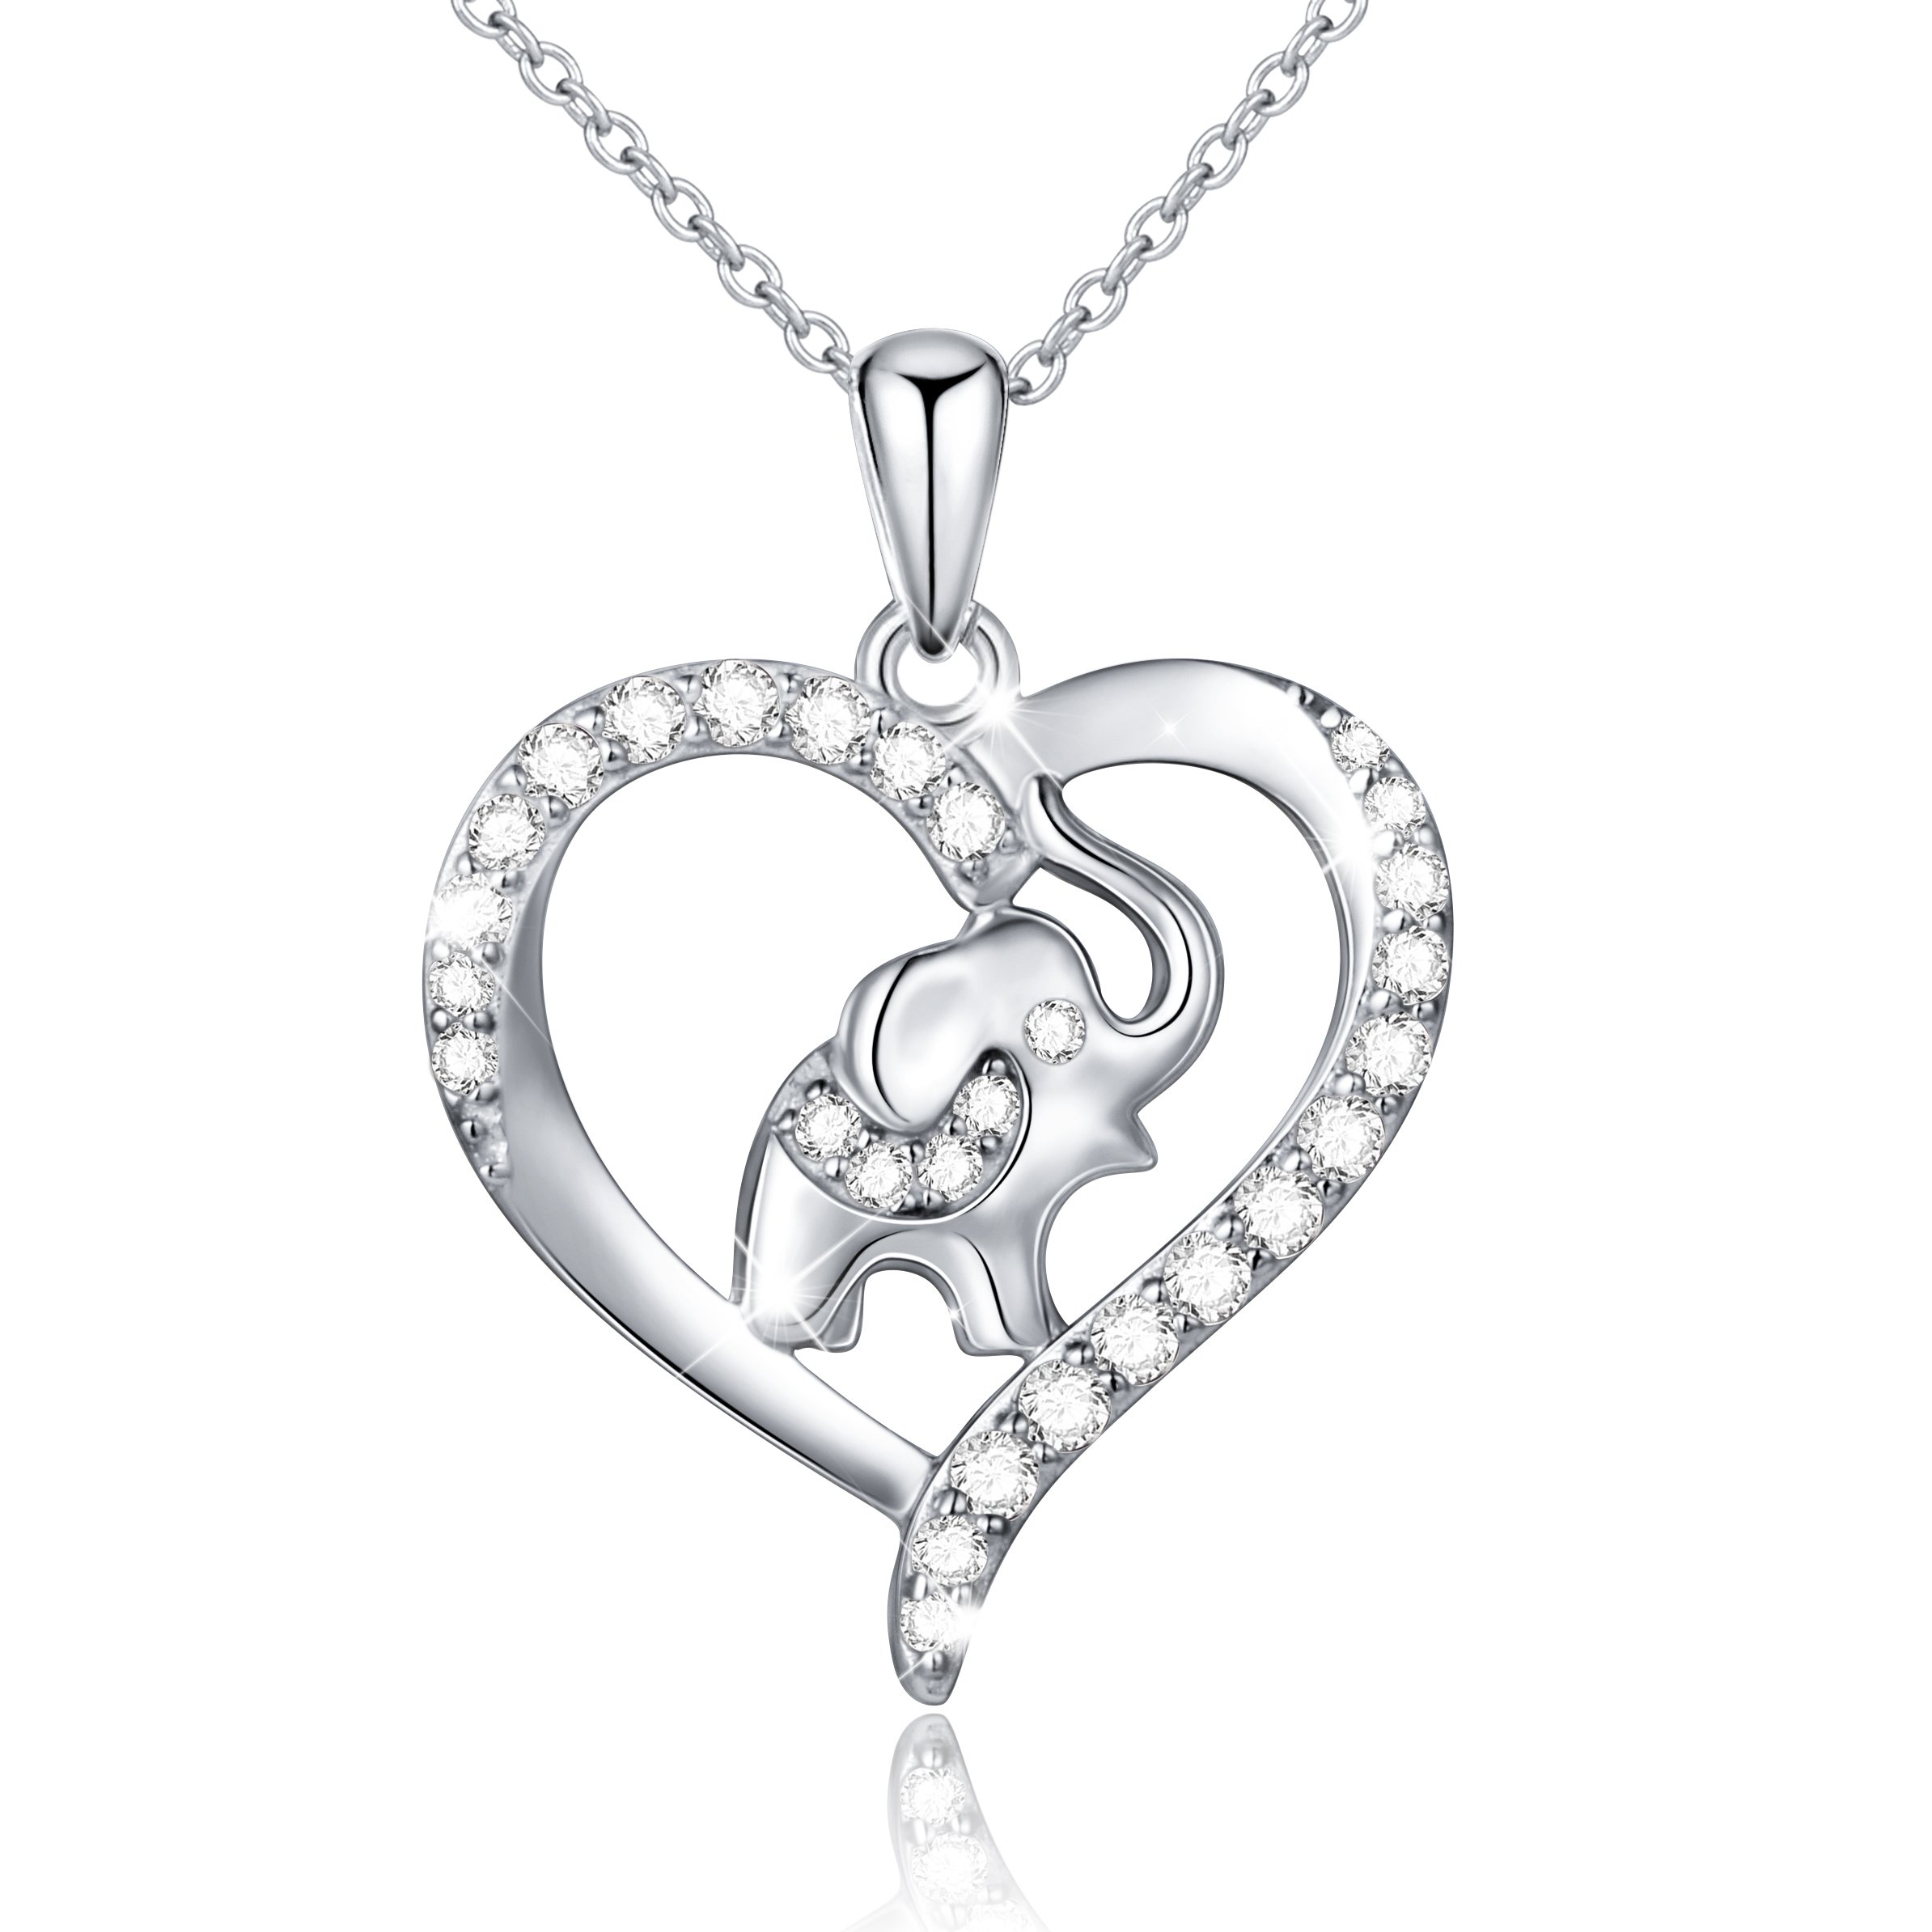 S925 Sterling Silver Lucky Elephant Love Heart Necklace for Women, 18'' Rolo Chain (Without Engraved)